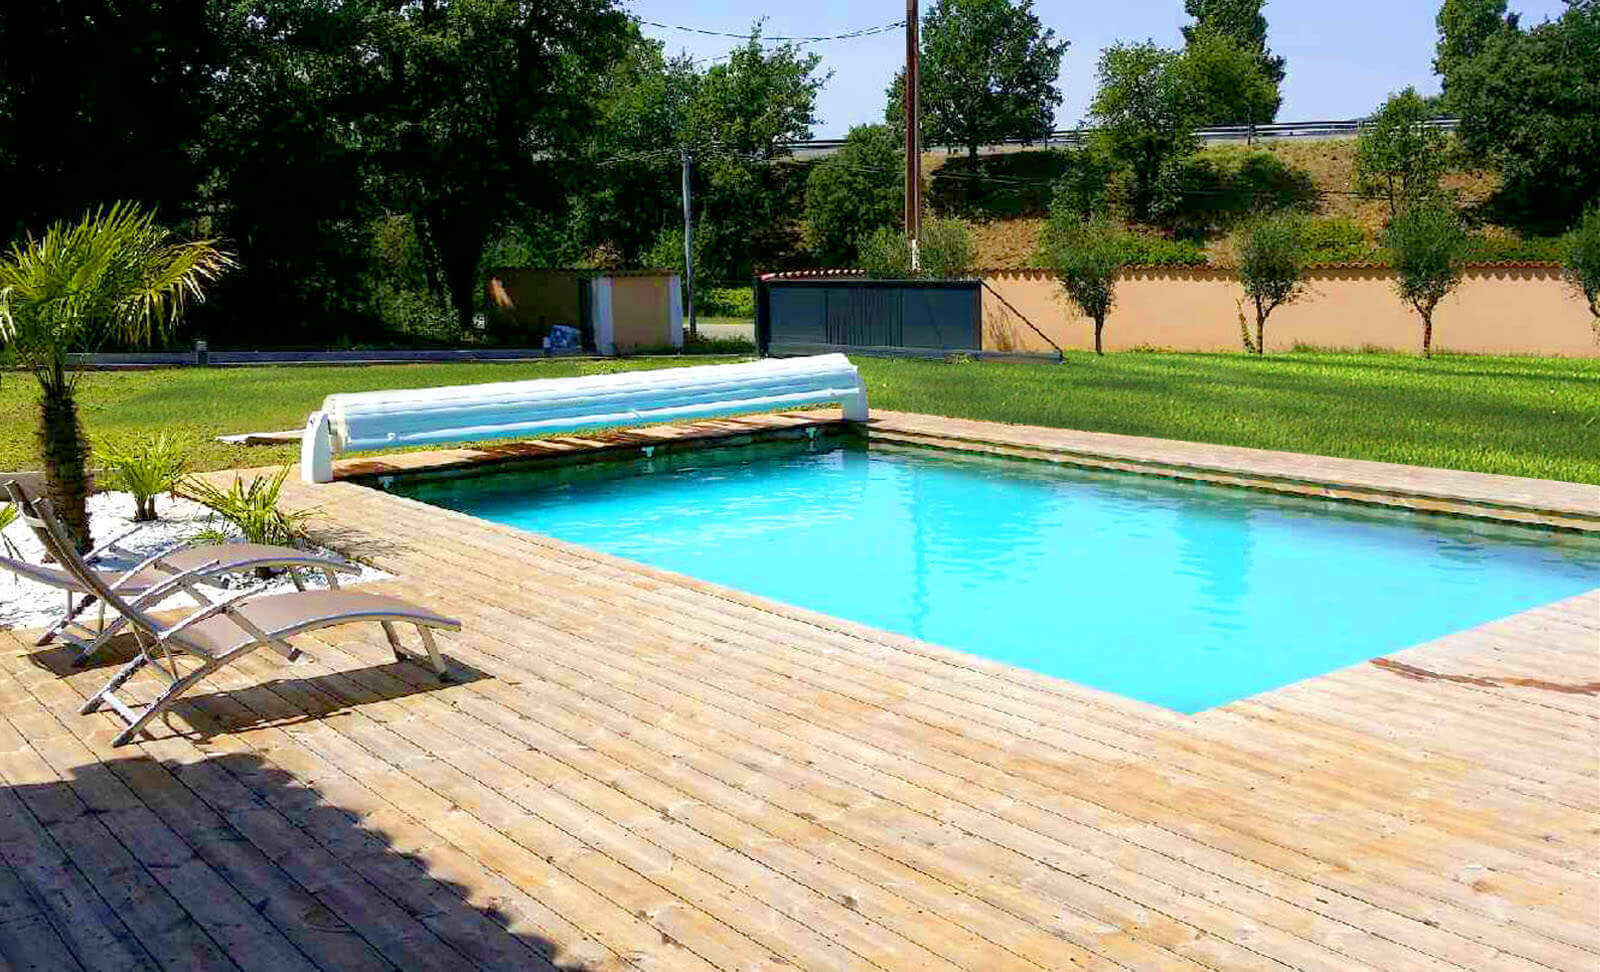 Galerie photos de piscines enterr es en bois for Piscine en bois